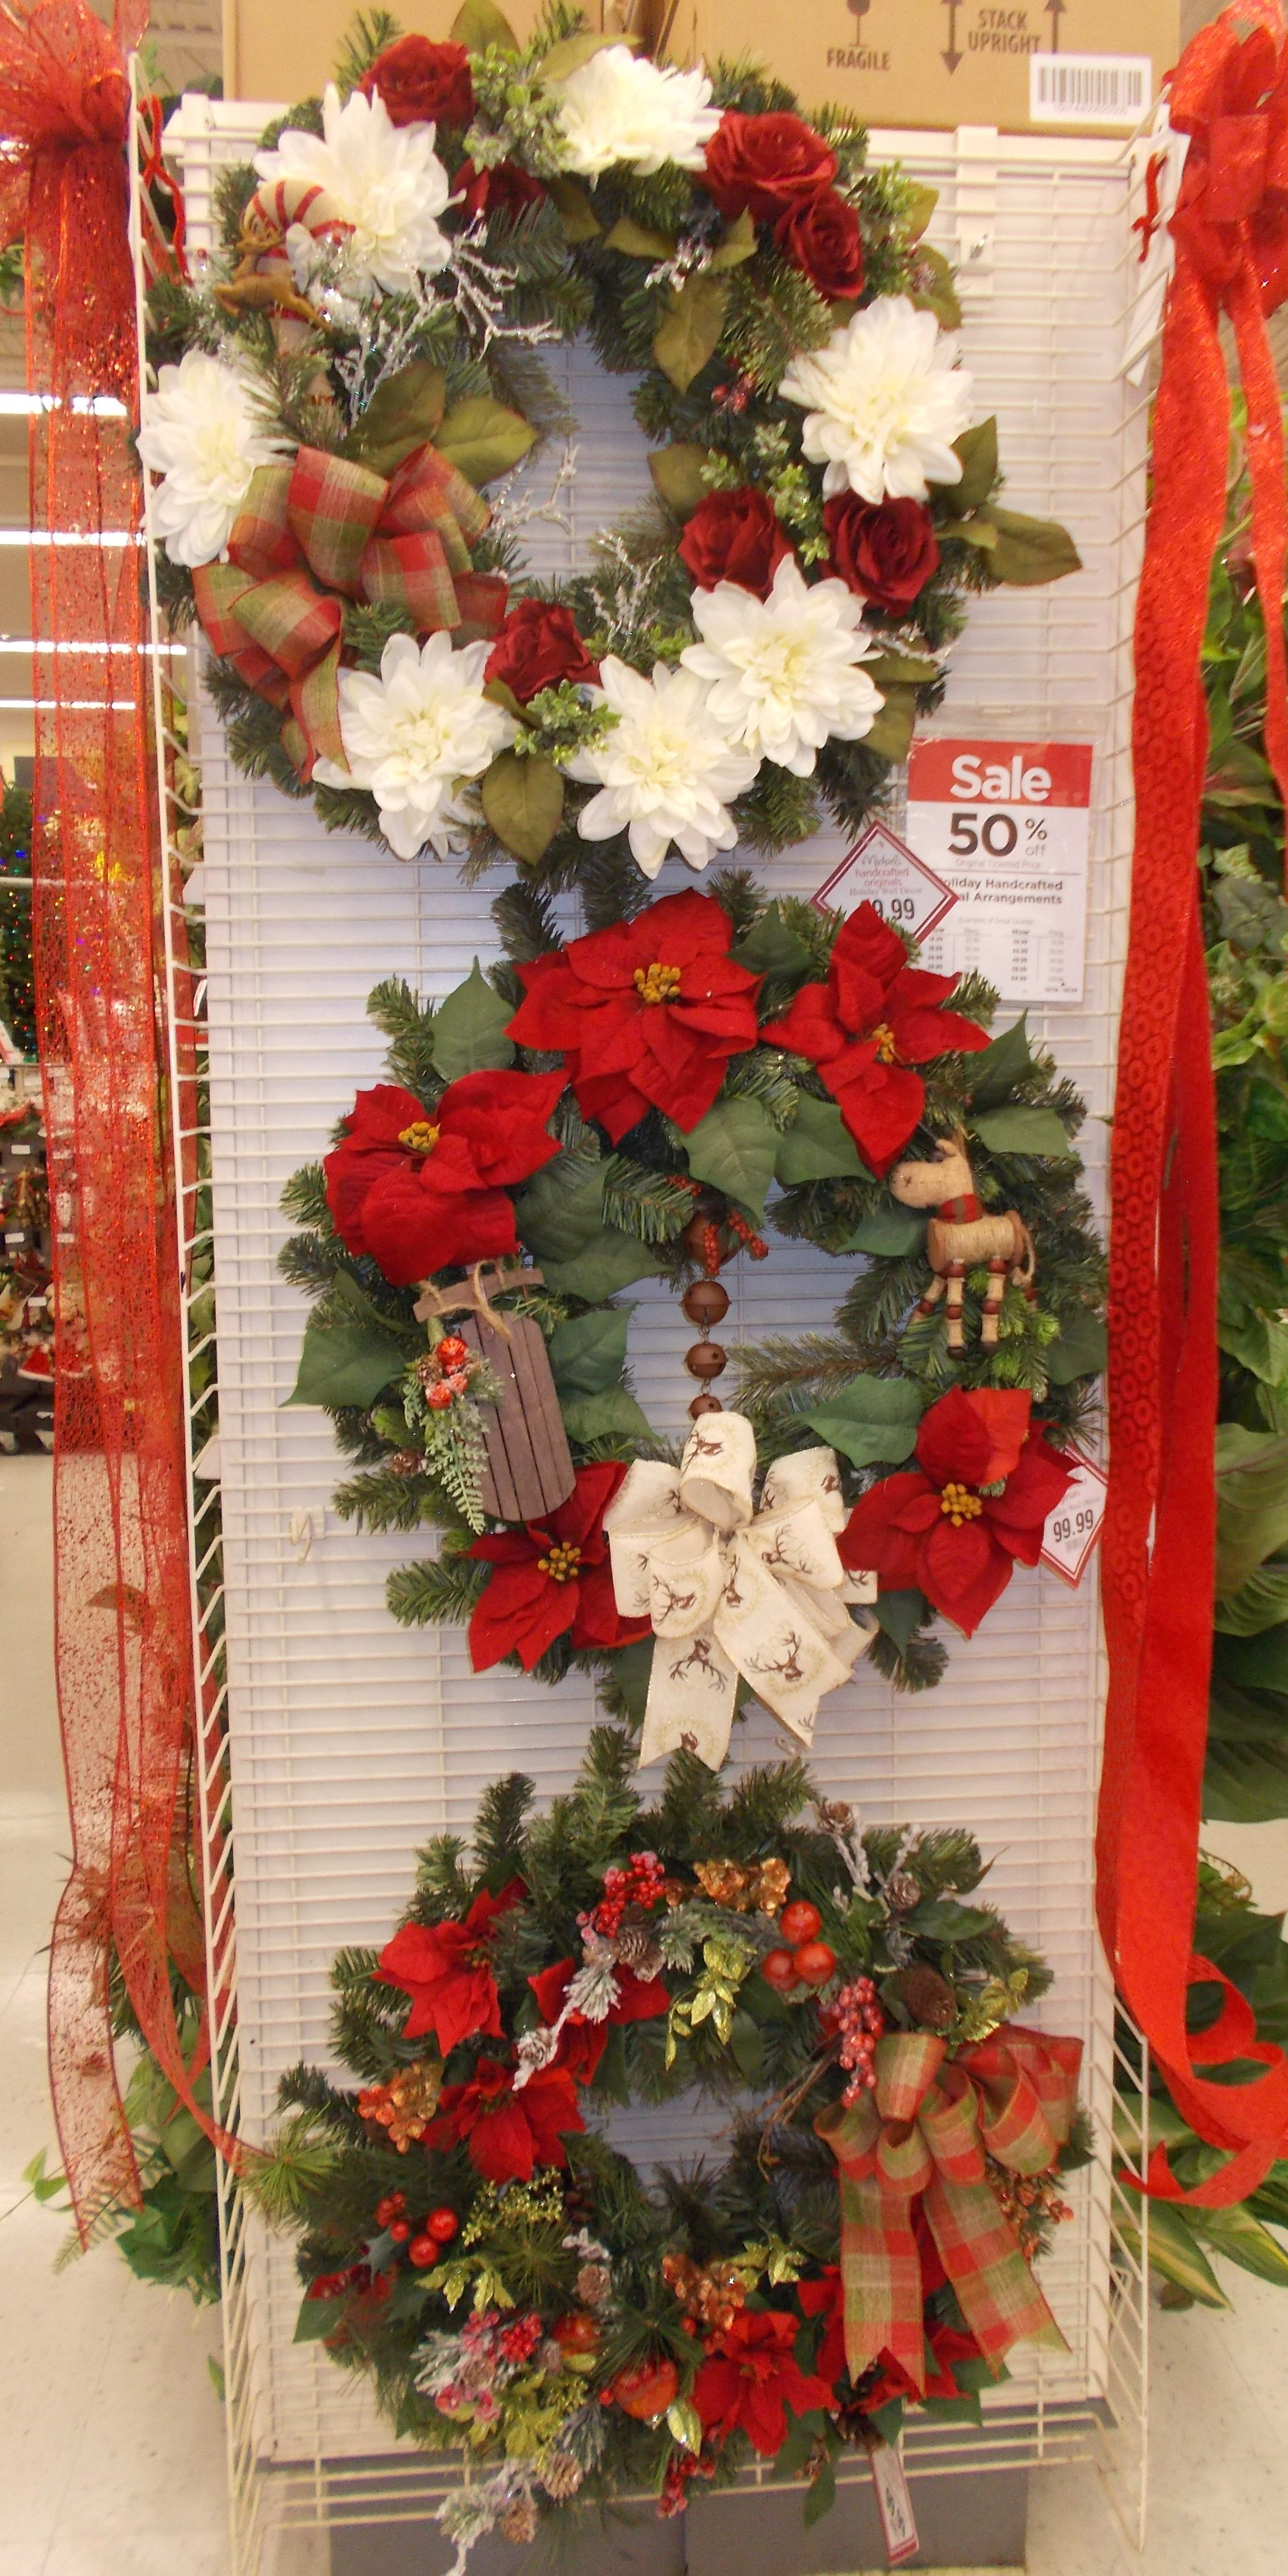 3 wreaths in my Michaels floral shop sherrie 2015